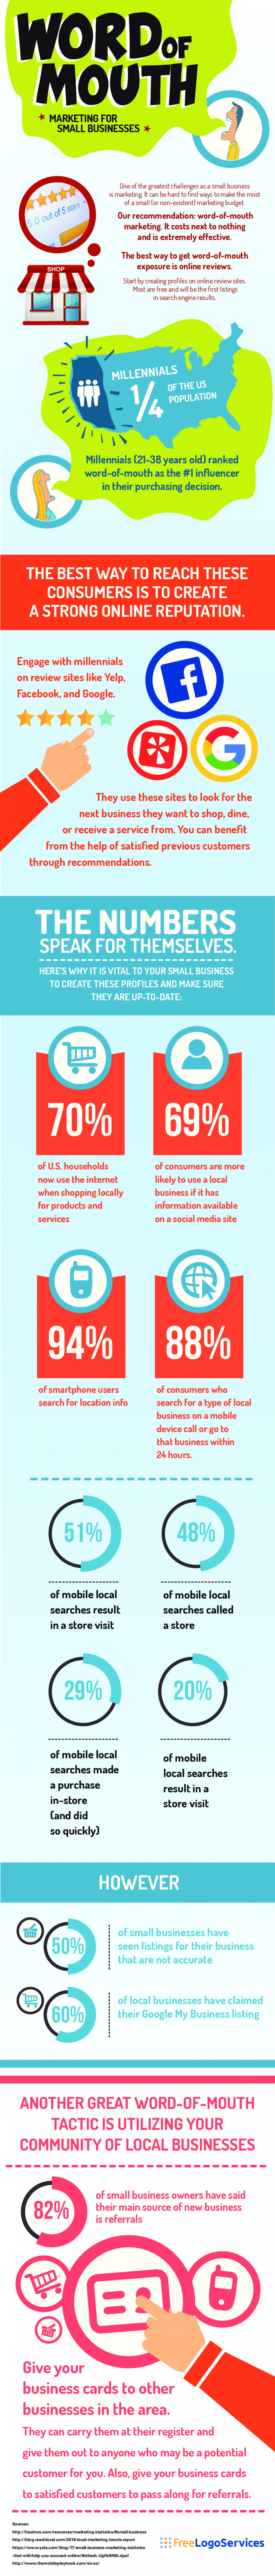 Word of Mouth Marketing for Small Businesses Infographic